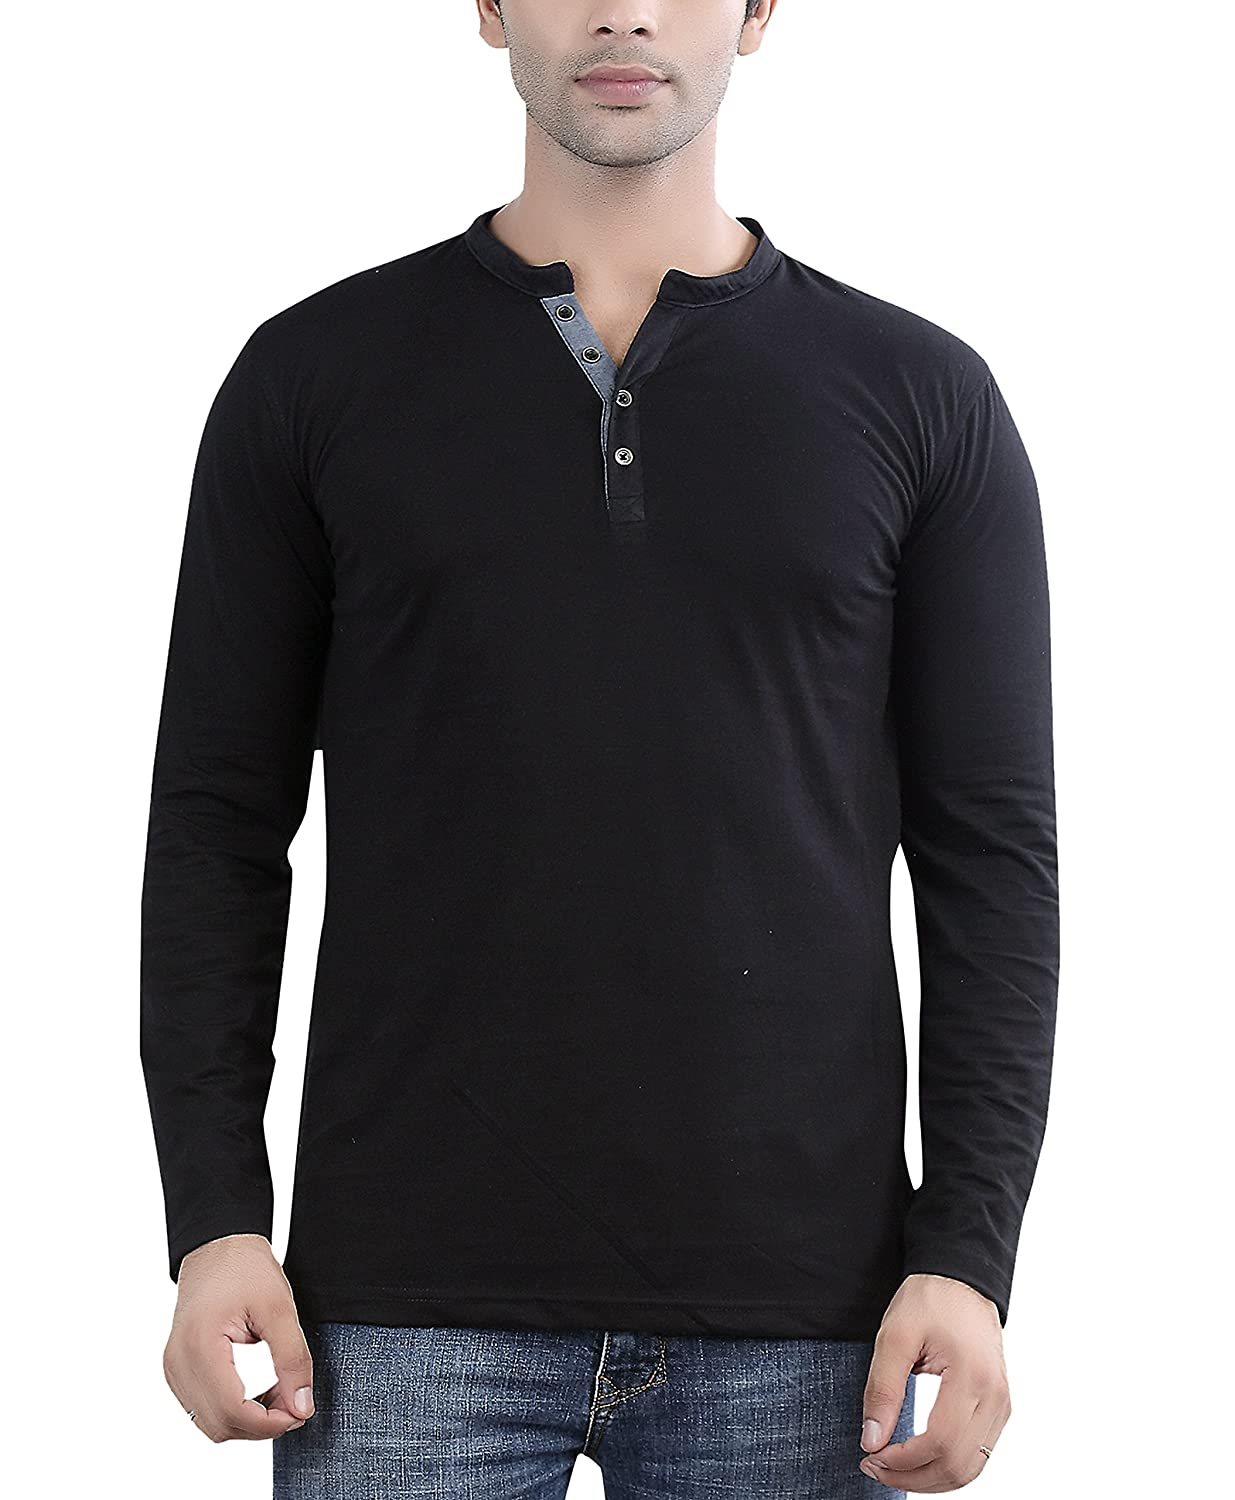 Buy full hand t shirts with collar 54 off for Full hand t shirts for womens